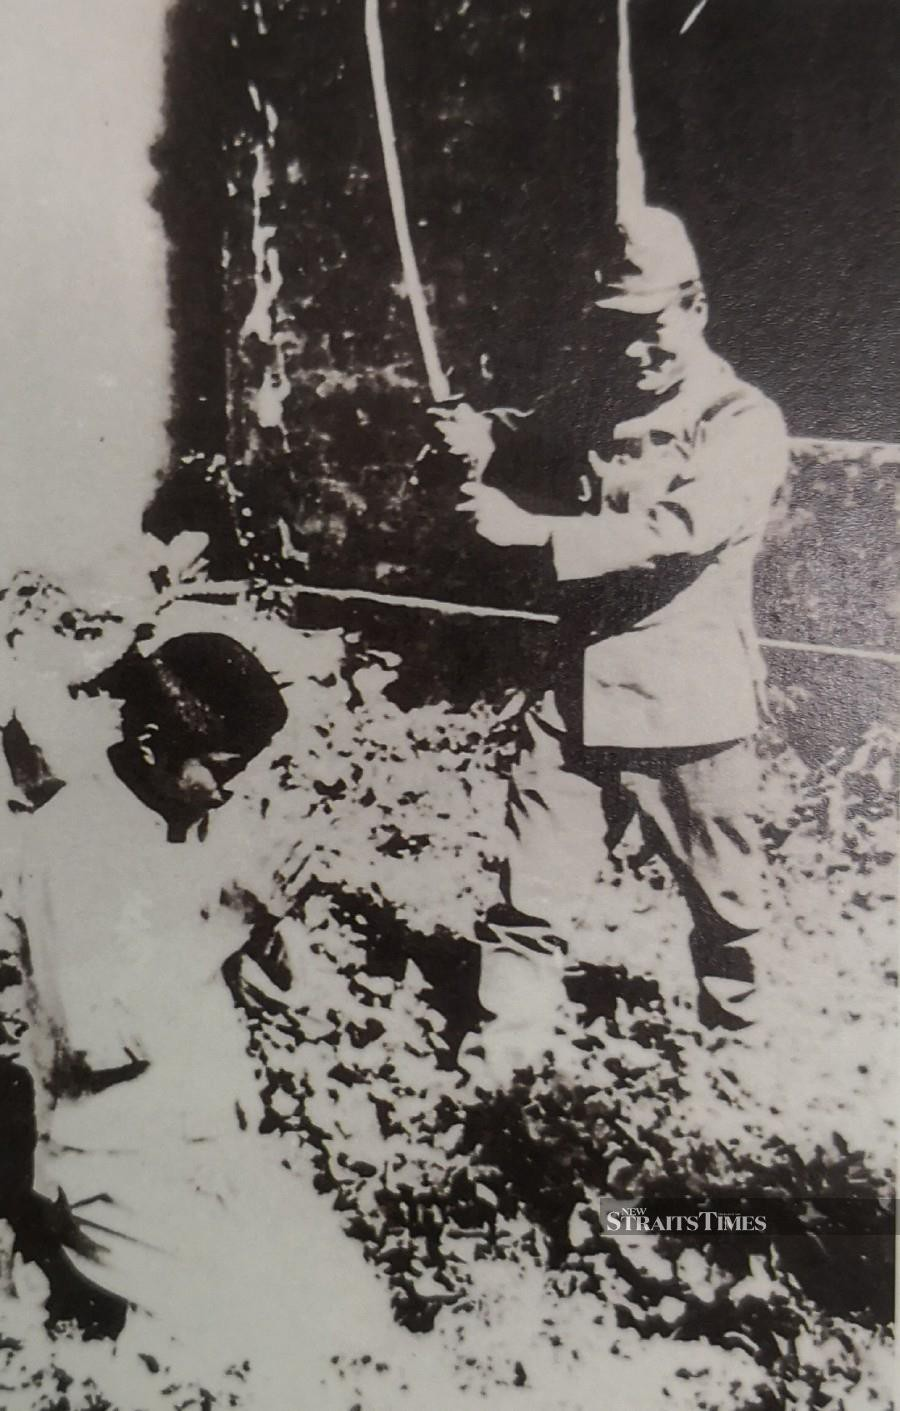 Malayans suspected of being British spies were executed by the Japanese soldiers.